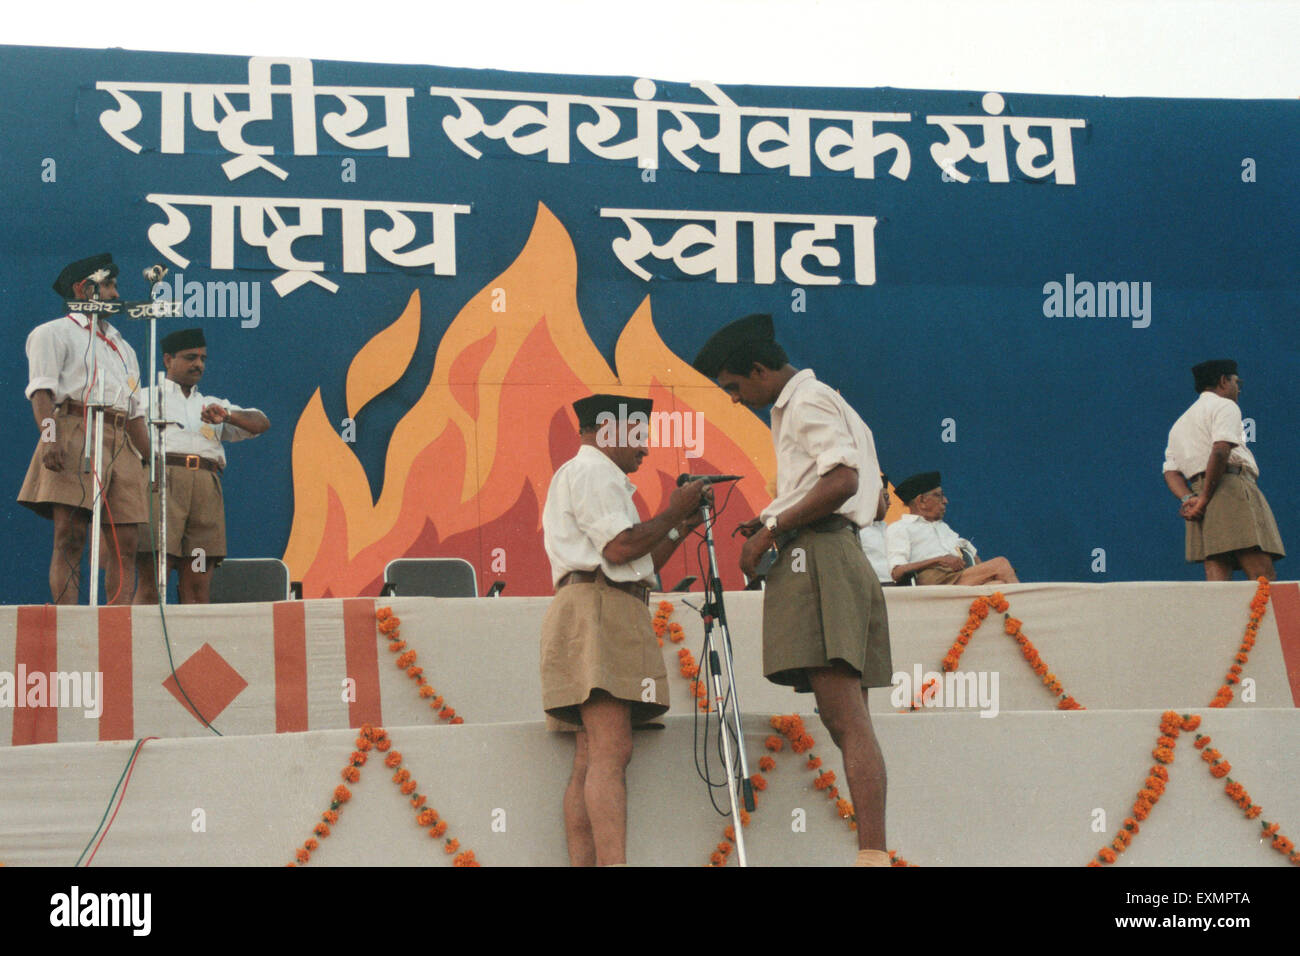 RSS Rashtriya Swayamsevak Sangh party members India - Stock Image